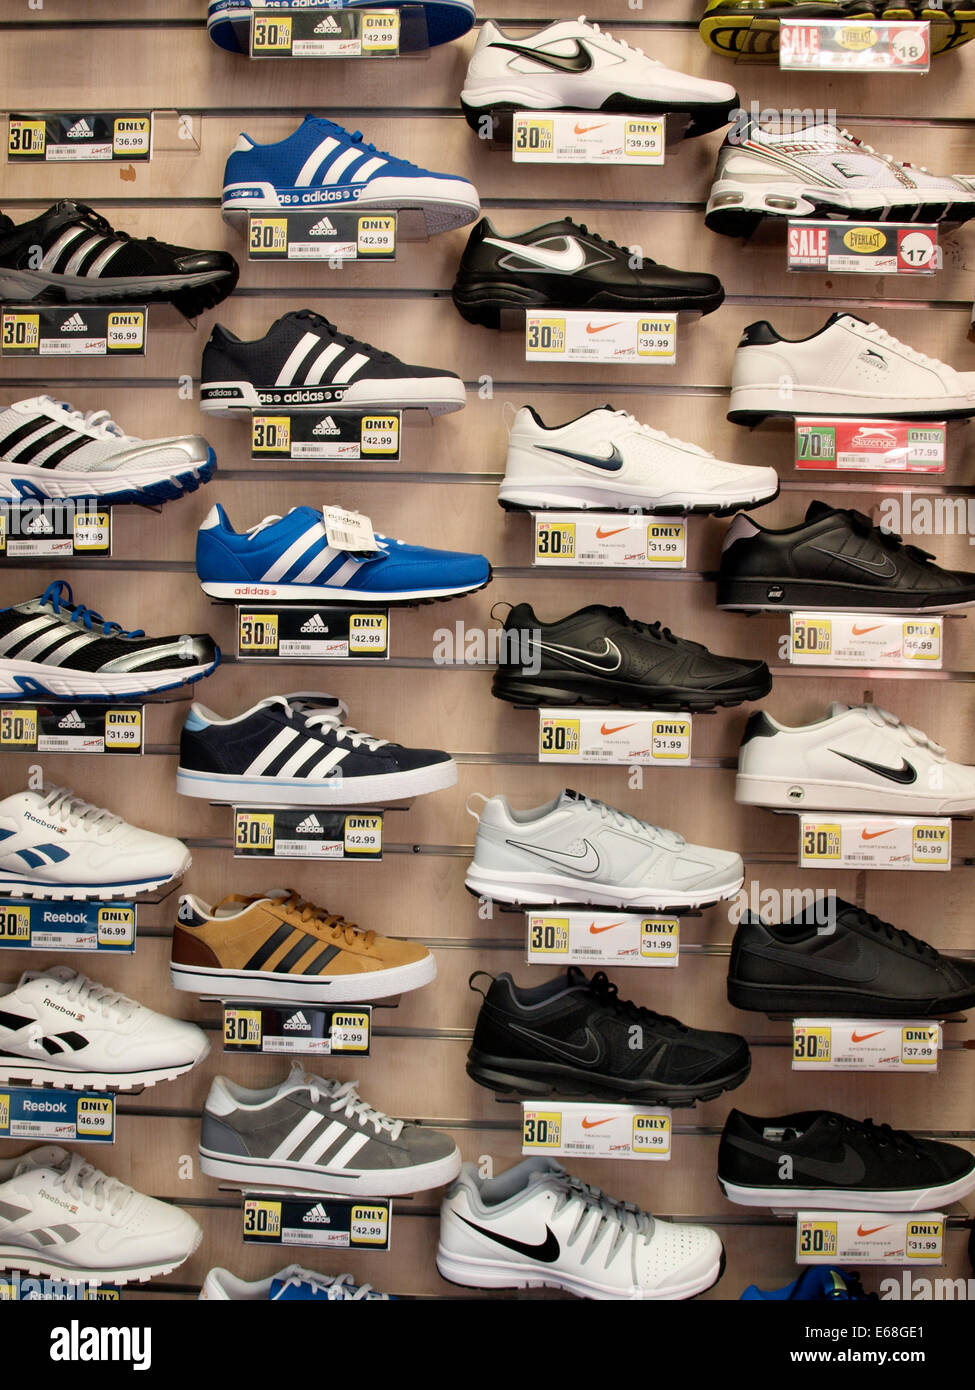 Nike Trainers Stock Photos & Nike Trainers Stock Images Alamy